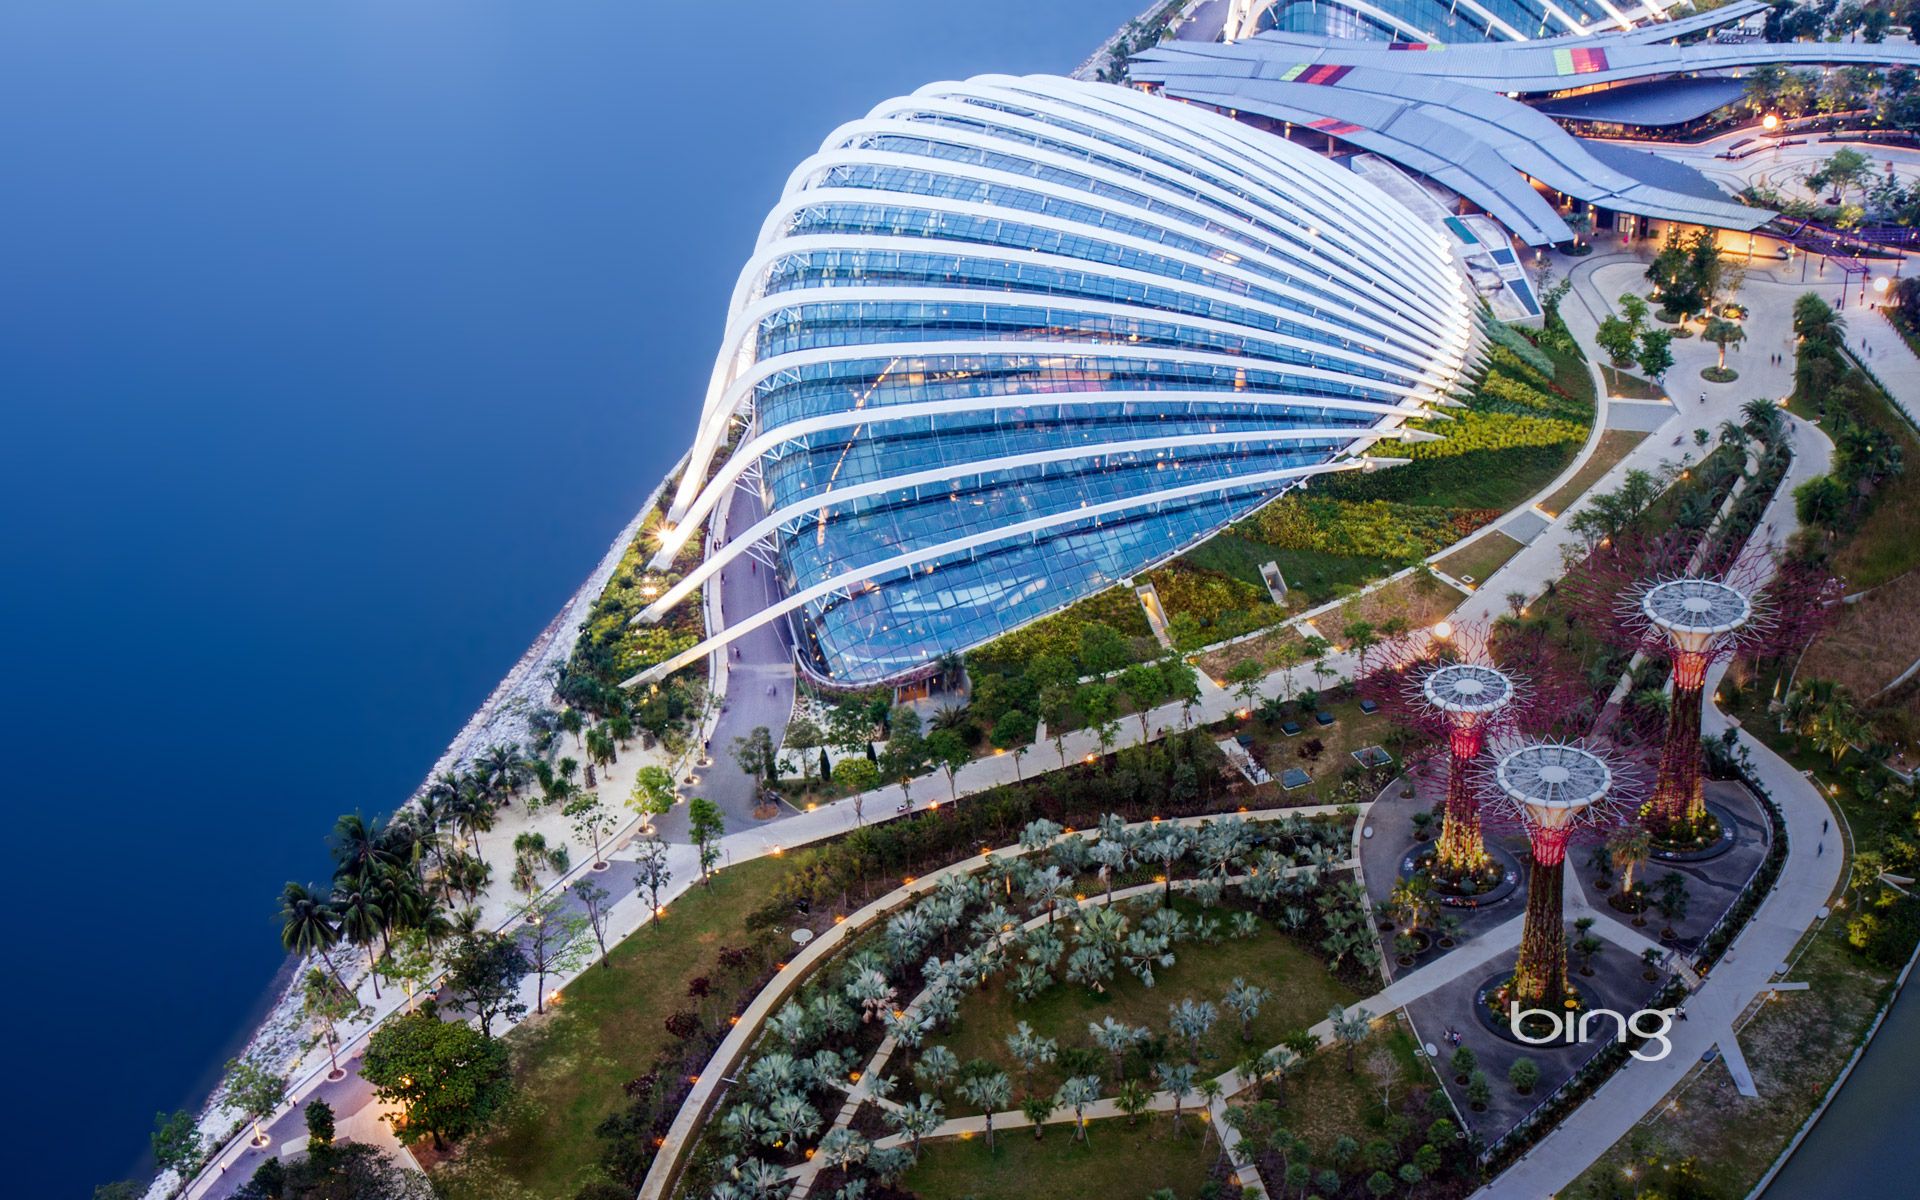 Aerial view of Gardens by the Bay and the Supertrees Grove, Singapore City, Singapore